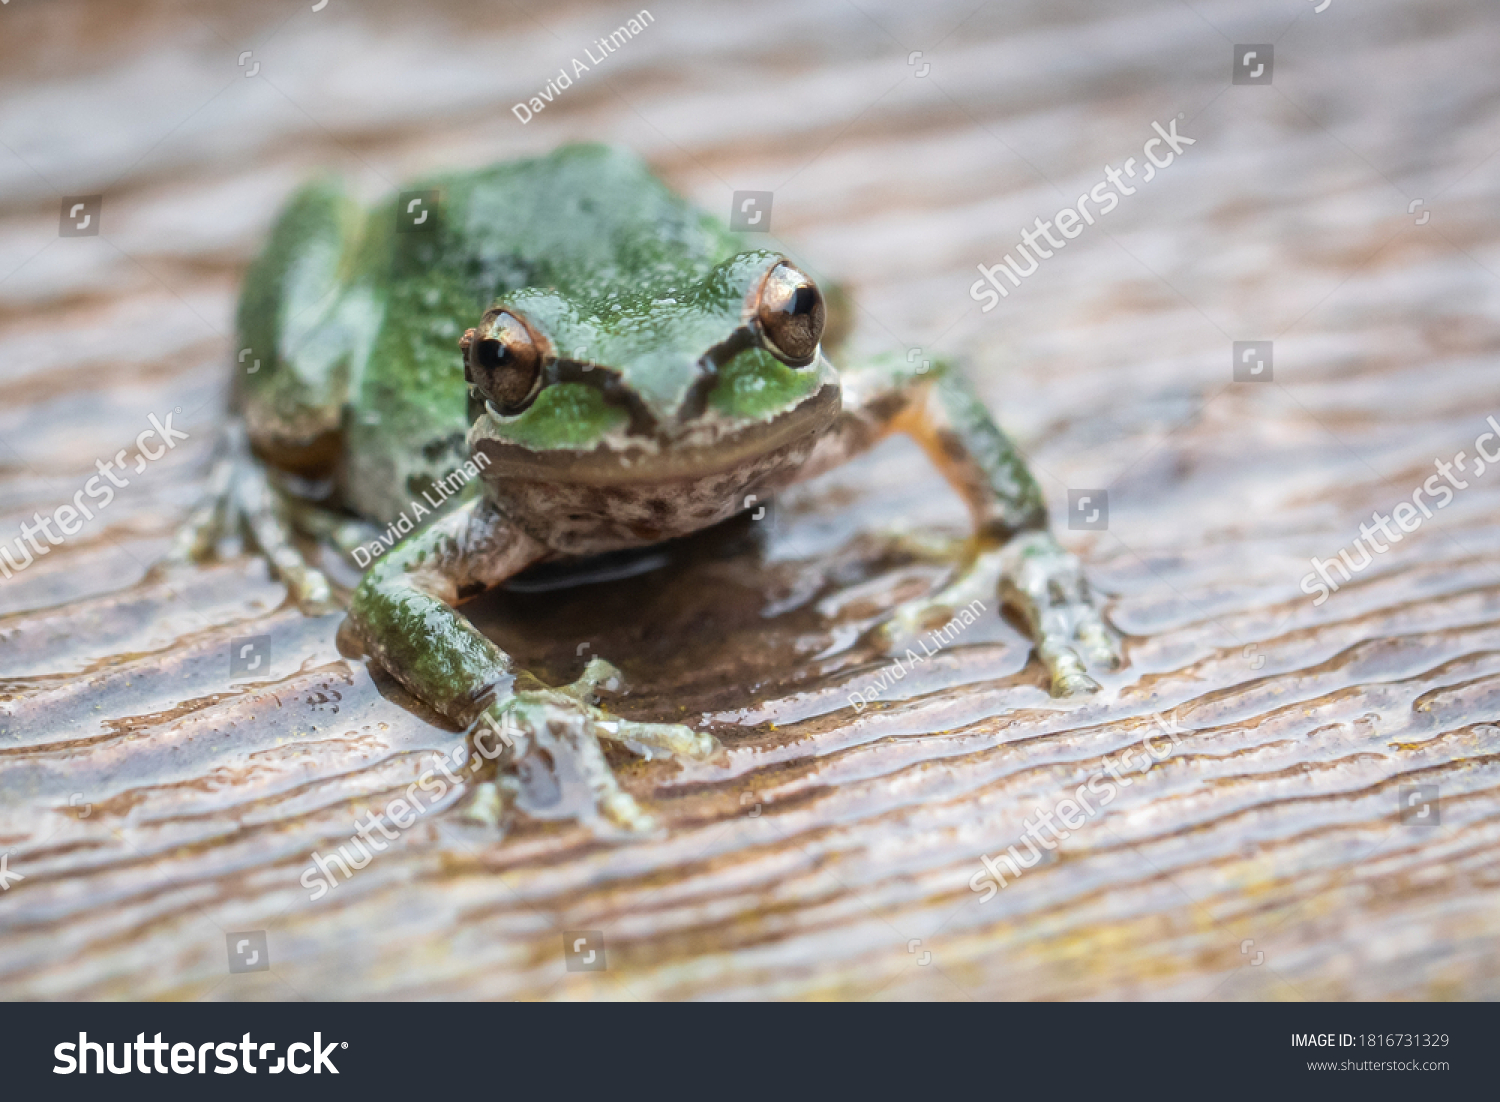 Pacific tree frogs (Pseudacris regilla) are common in Monterey, California. Their range includes California, Oregon, Washington, Canada and southern Alaska.  They can change between green and brown.